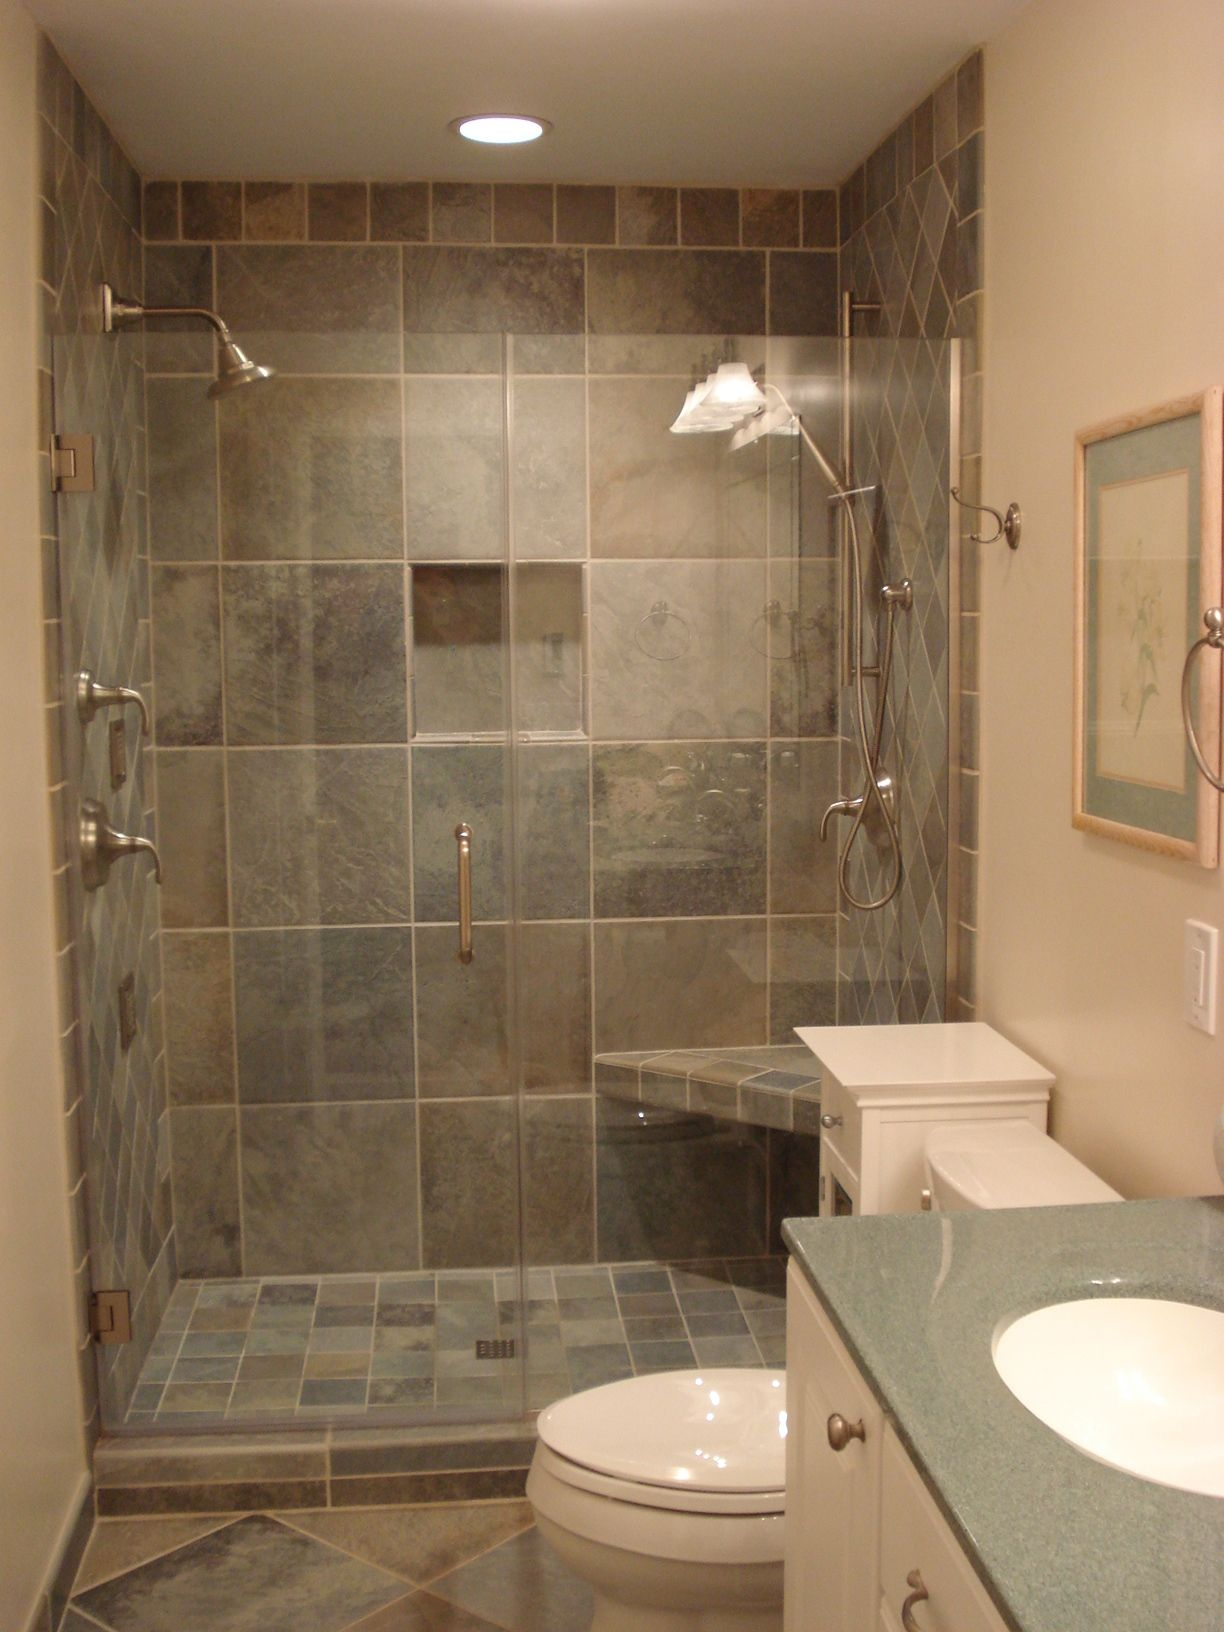 Best Bathroom Remodel Ideas You Must Have A Look Pinterest - Great bathroom remodel ideas